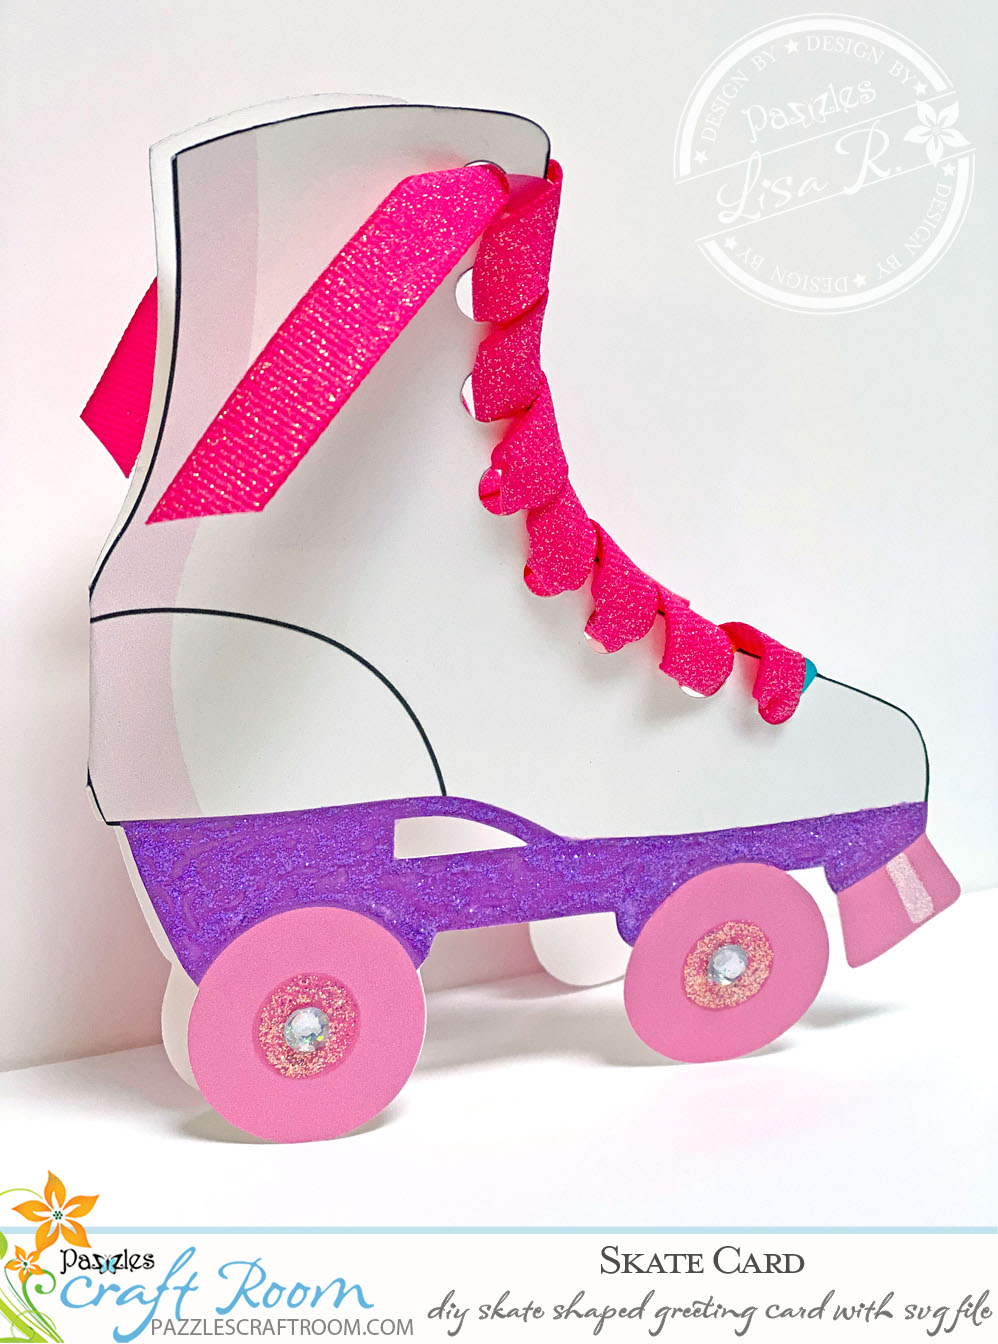 Pazzles DIY Roller Skate Card with instant SVG download. Compatible with all major electronic cutters including Pazzles Inspiration, Cricut, and Silhouette Cameo. Design by Lisa Reyna.